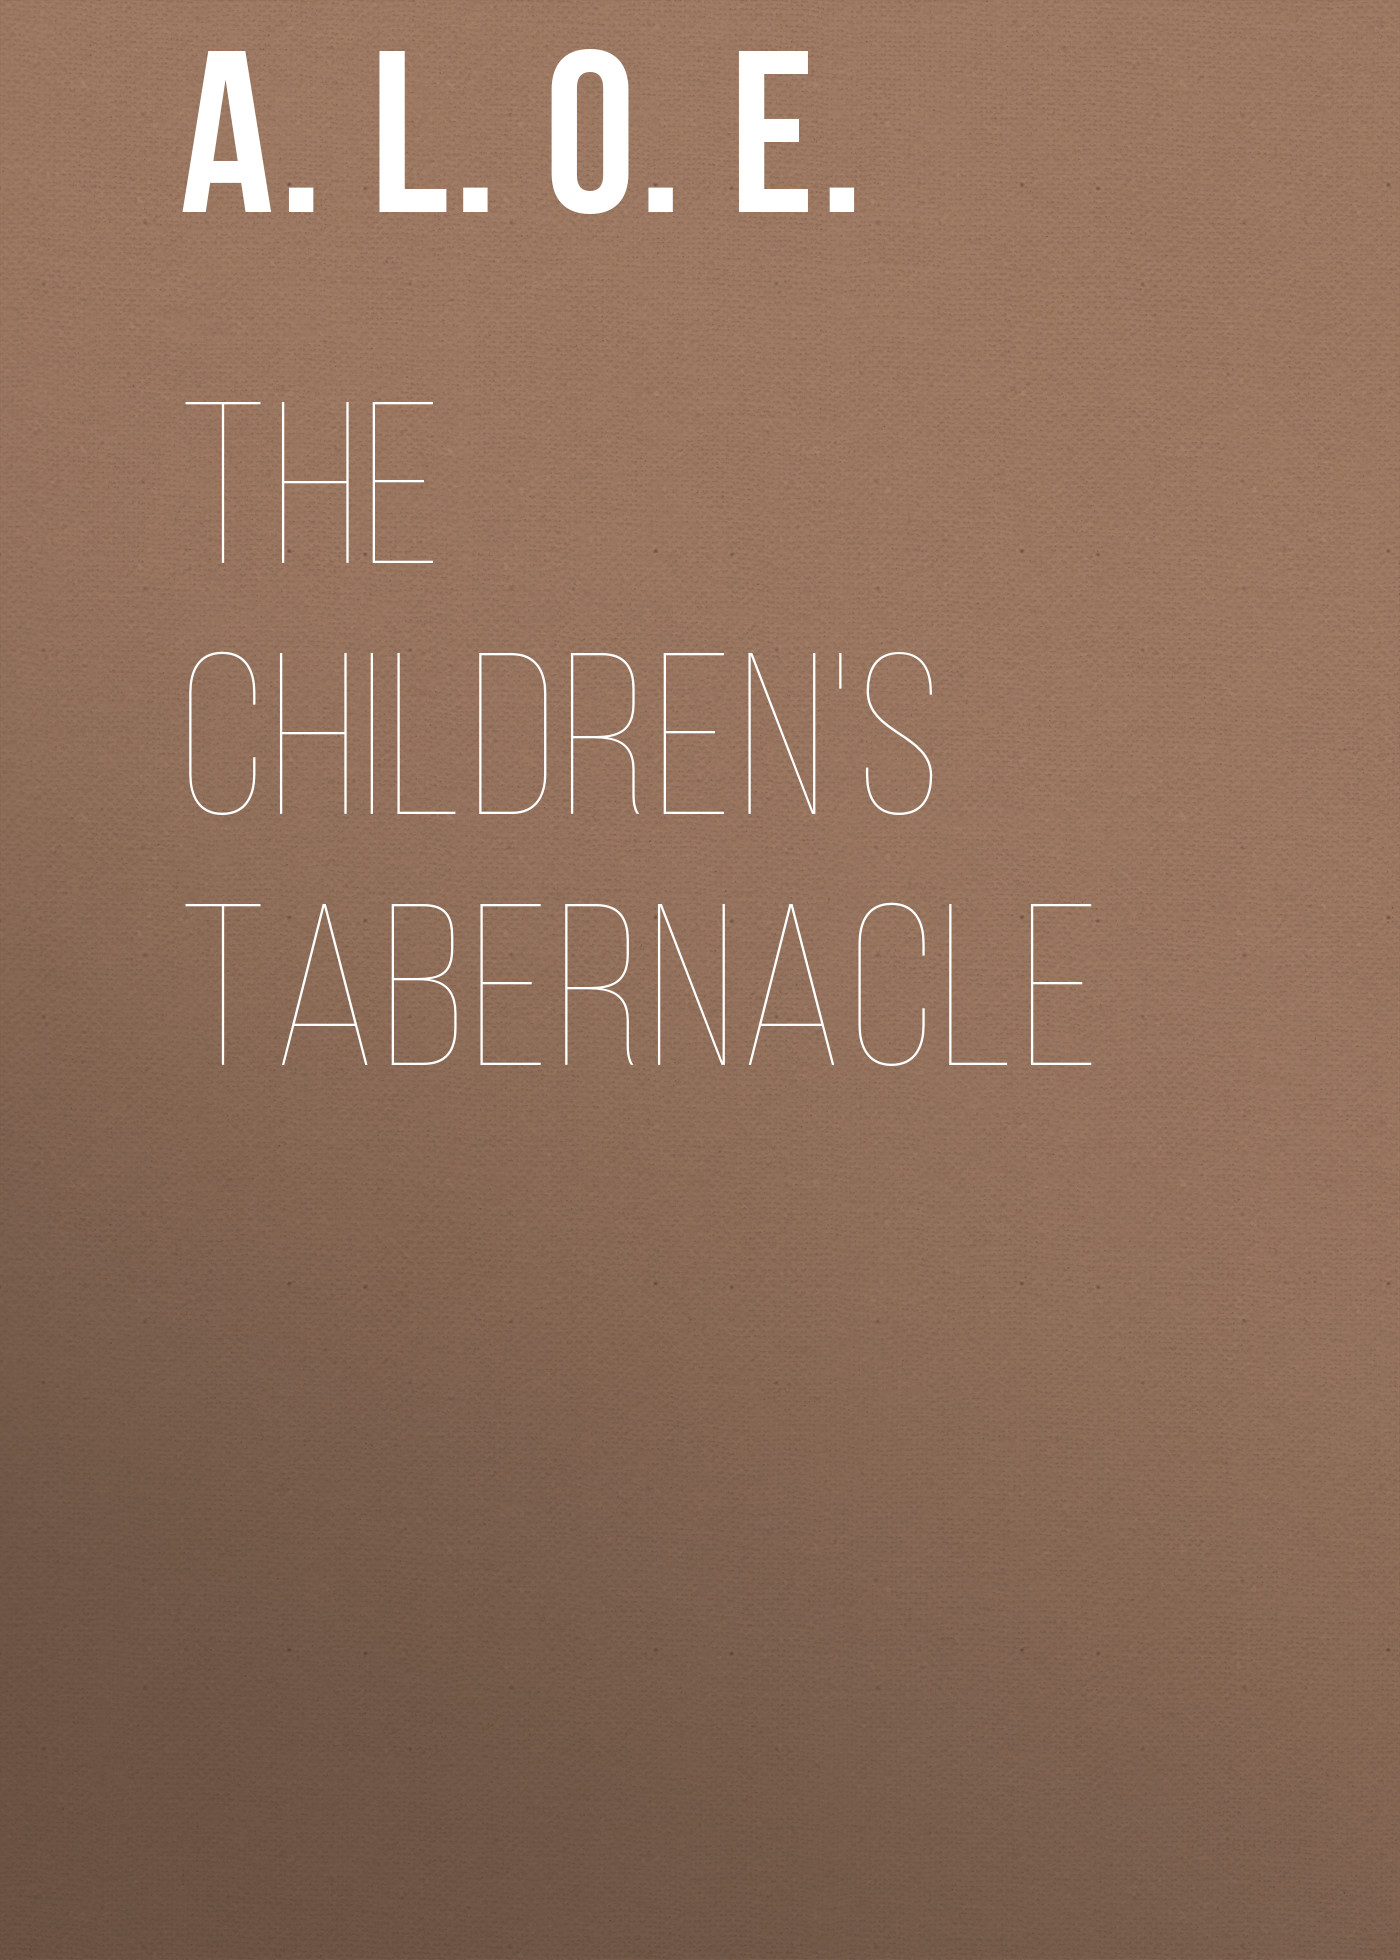 A. L. O. E. The Children's Tabernacle shure cvb w o